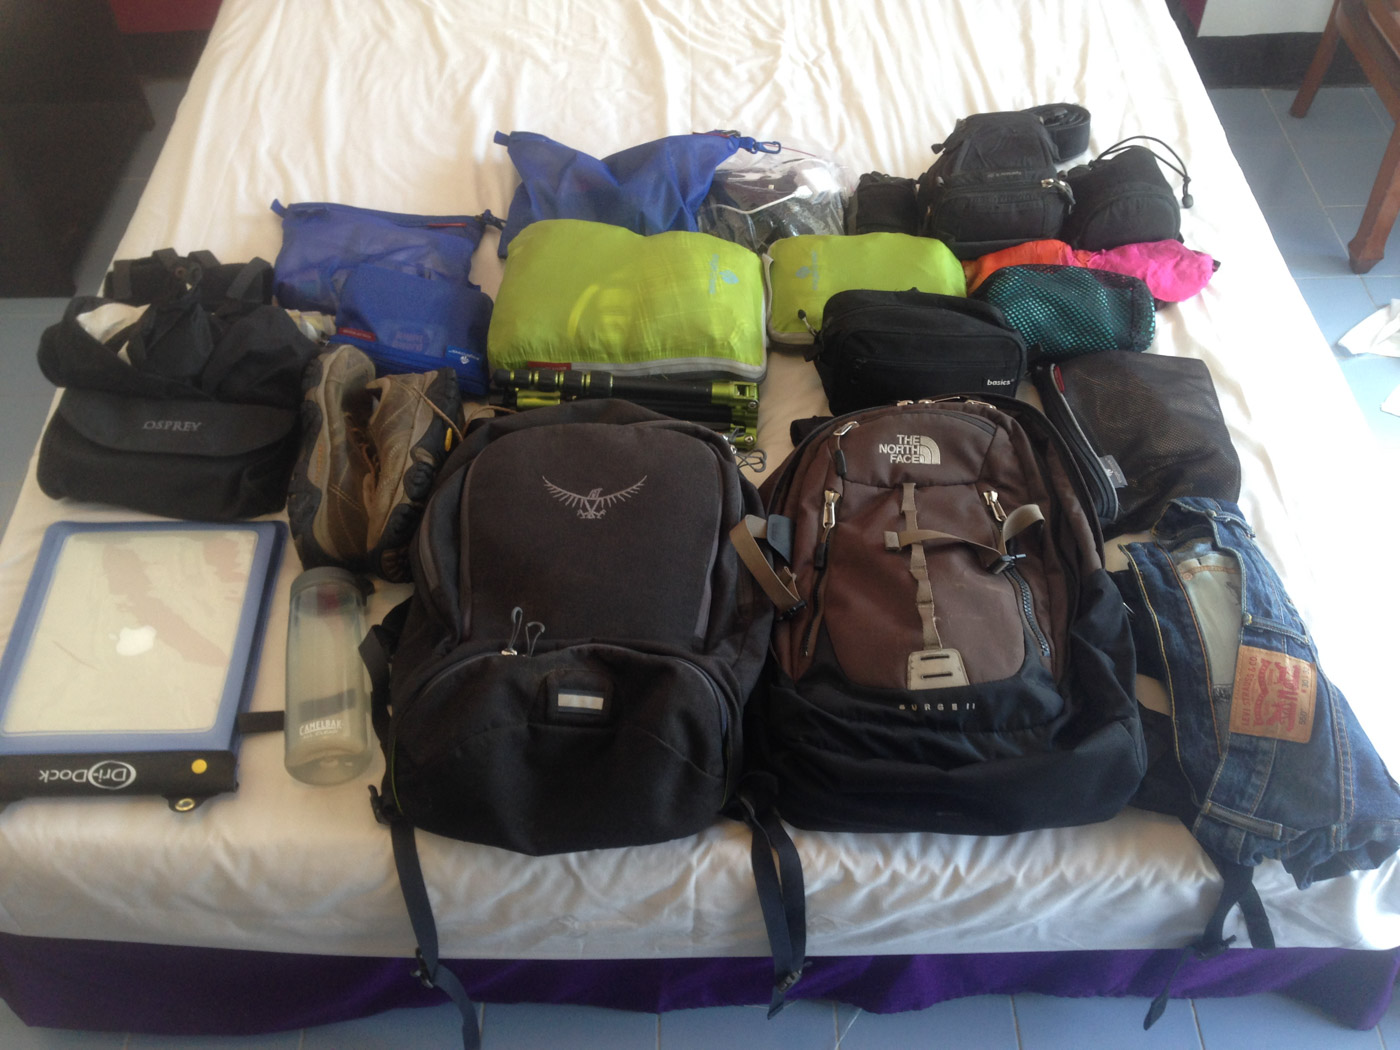 All my stuff, packed into little bags.